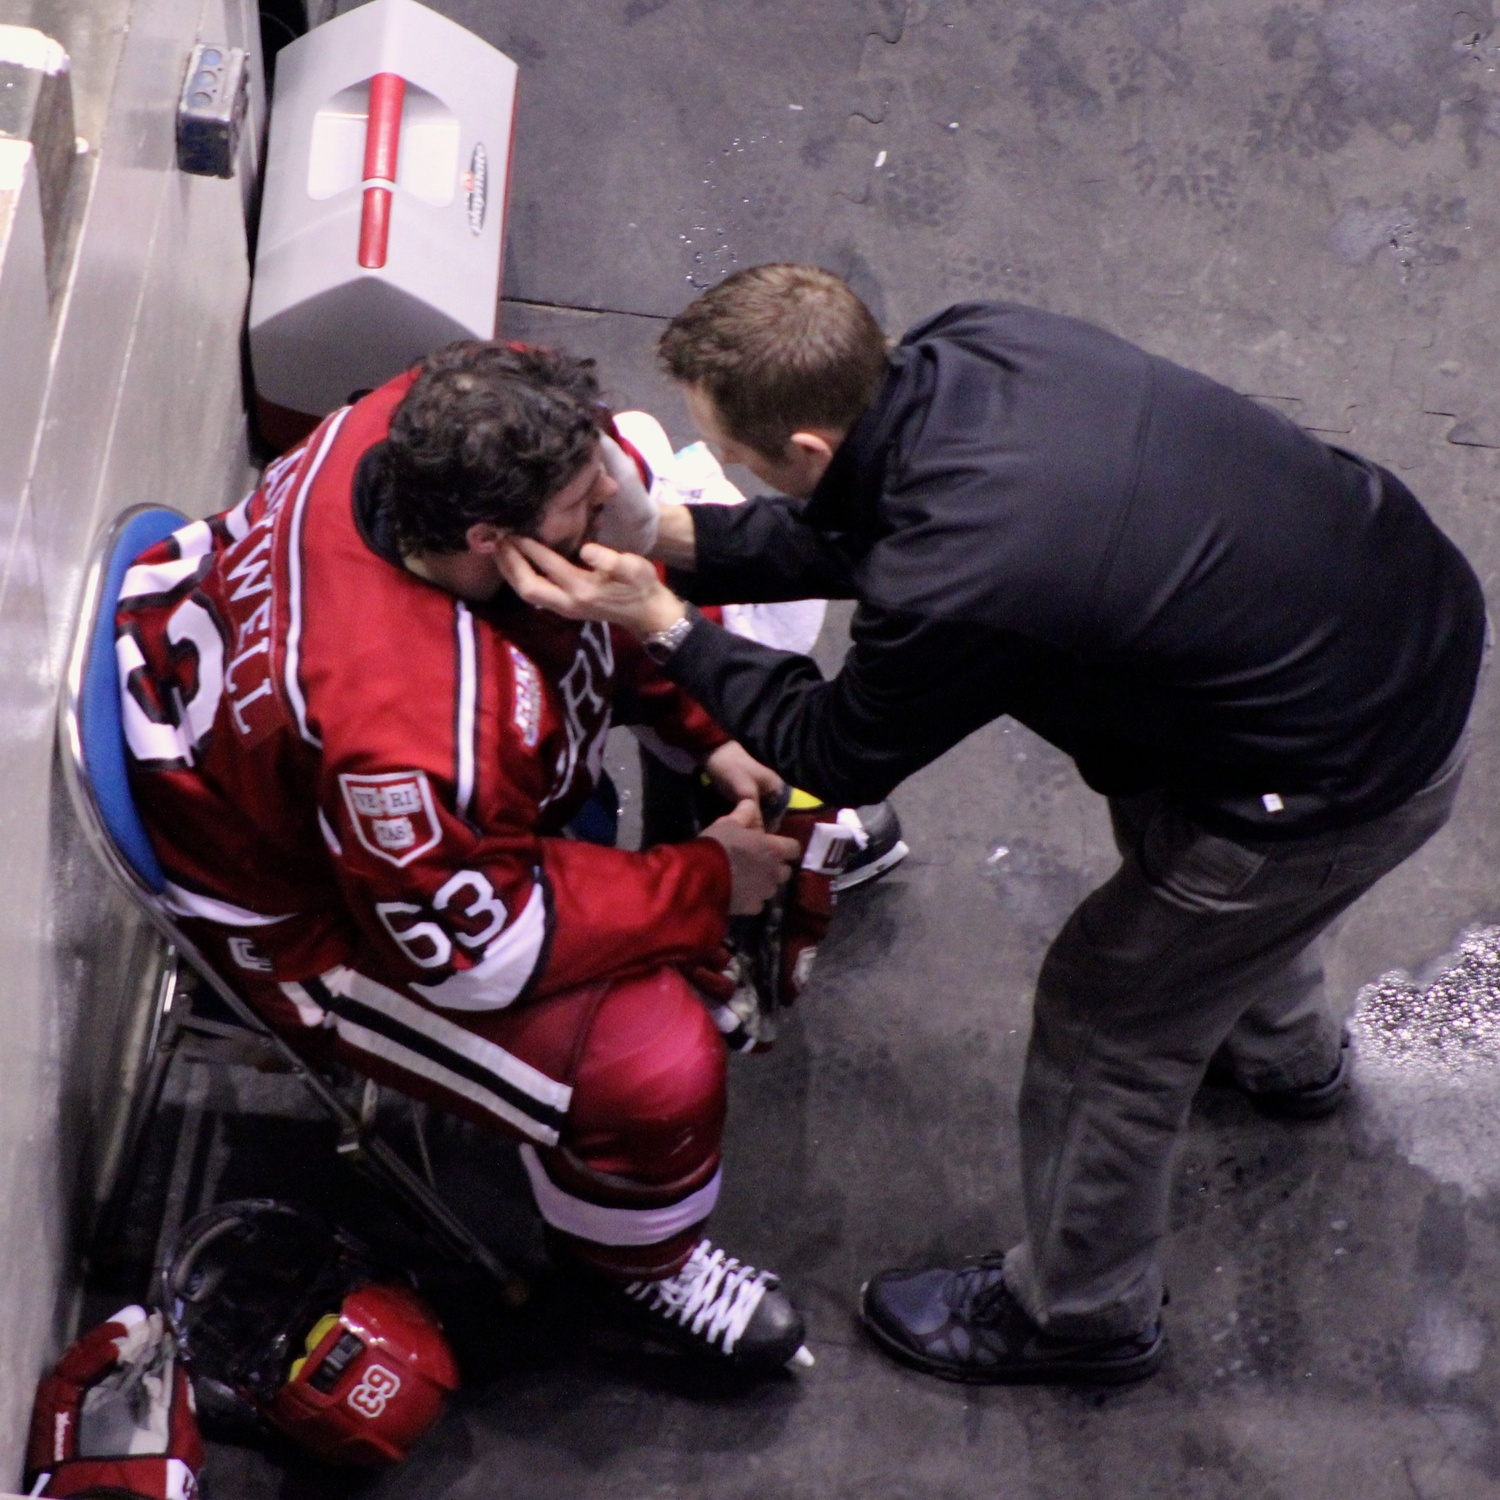 Fourth-year forward Colin Blackwell is evaluated by Harvard trainer Chad Krawiec after a hit by Quinnipiac sophomore Tim Clifton. Clifton was ejected for the play.